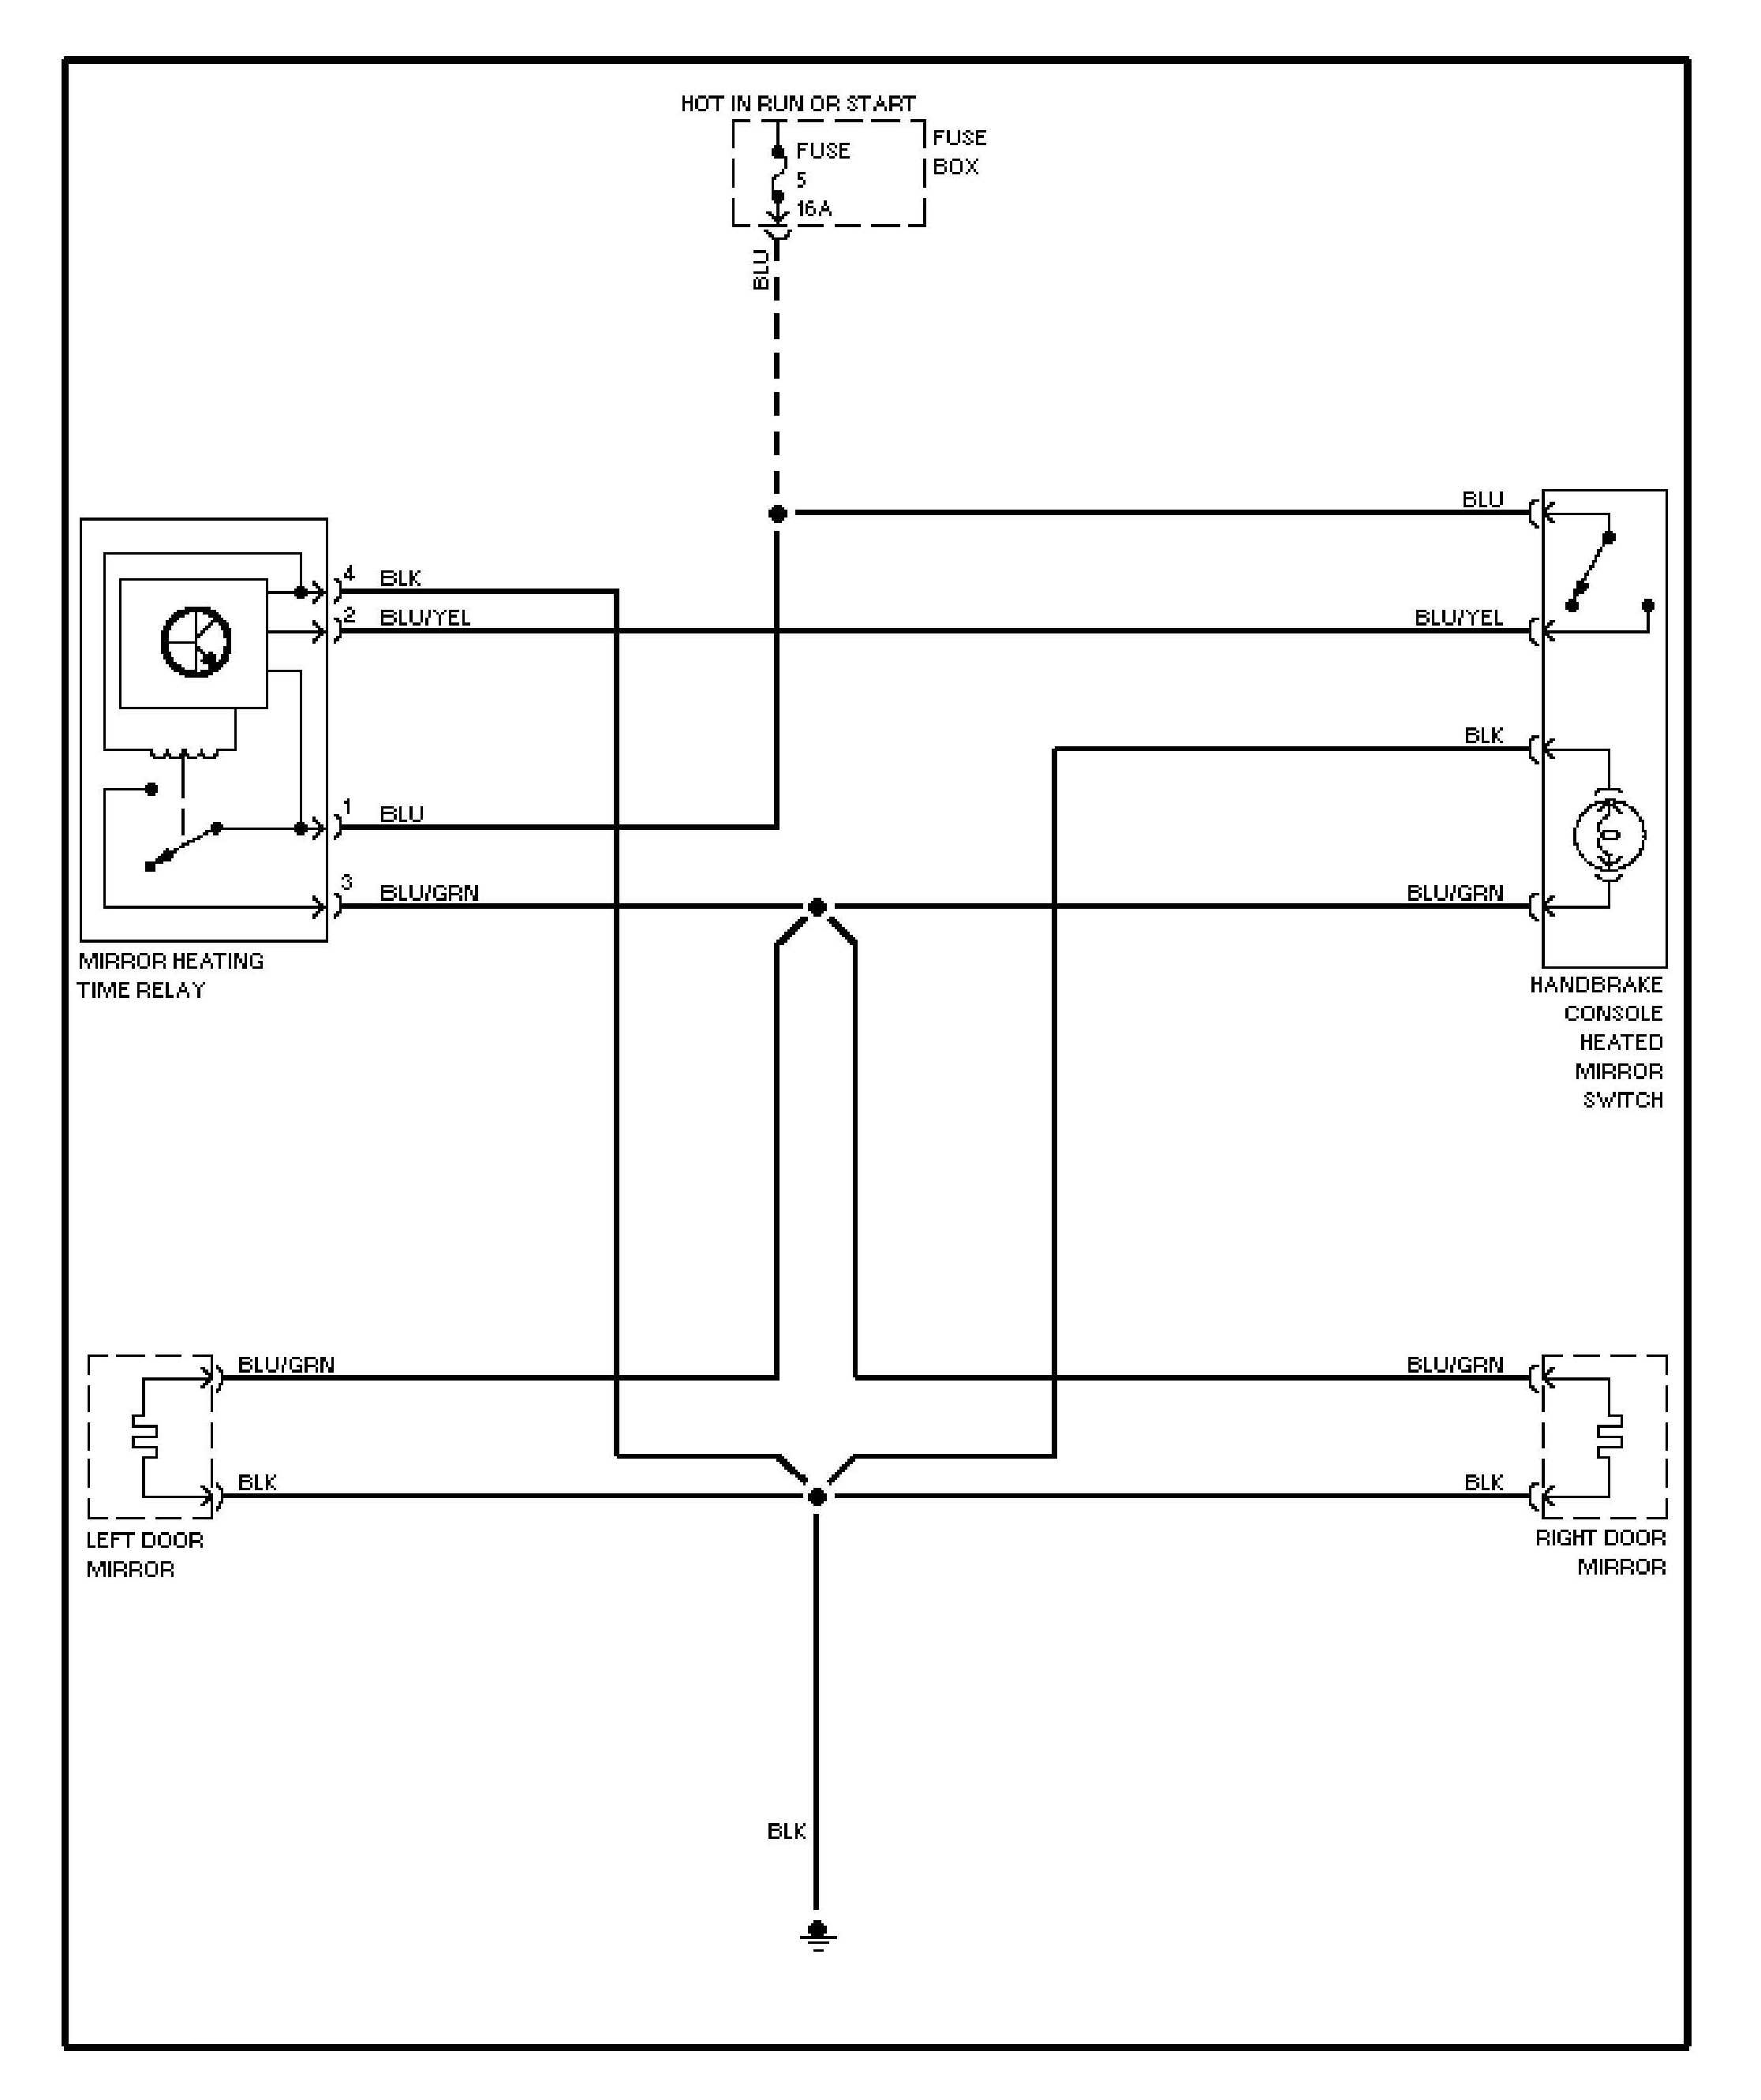 1993 Volvo 240 Stereo Wiring Diagram : Volvo wiring diagrams heated mirrors